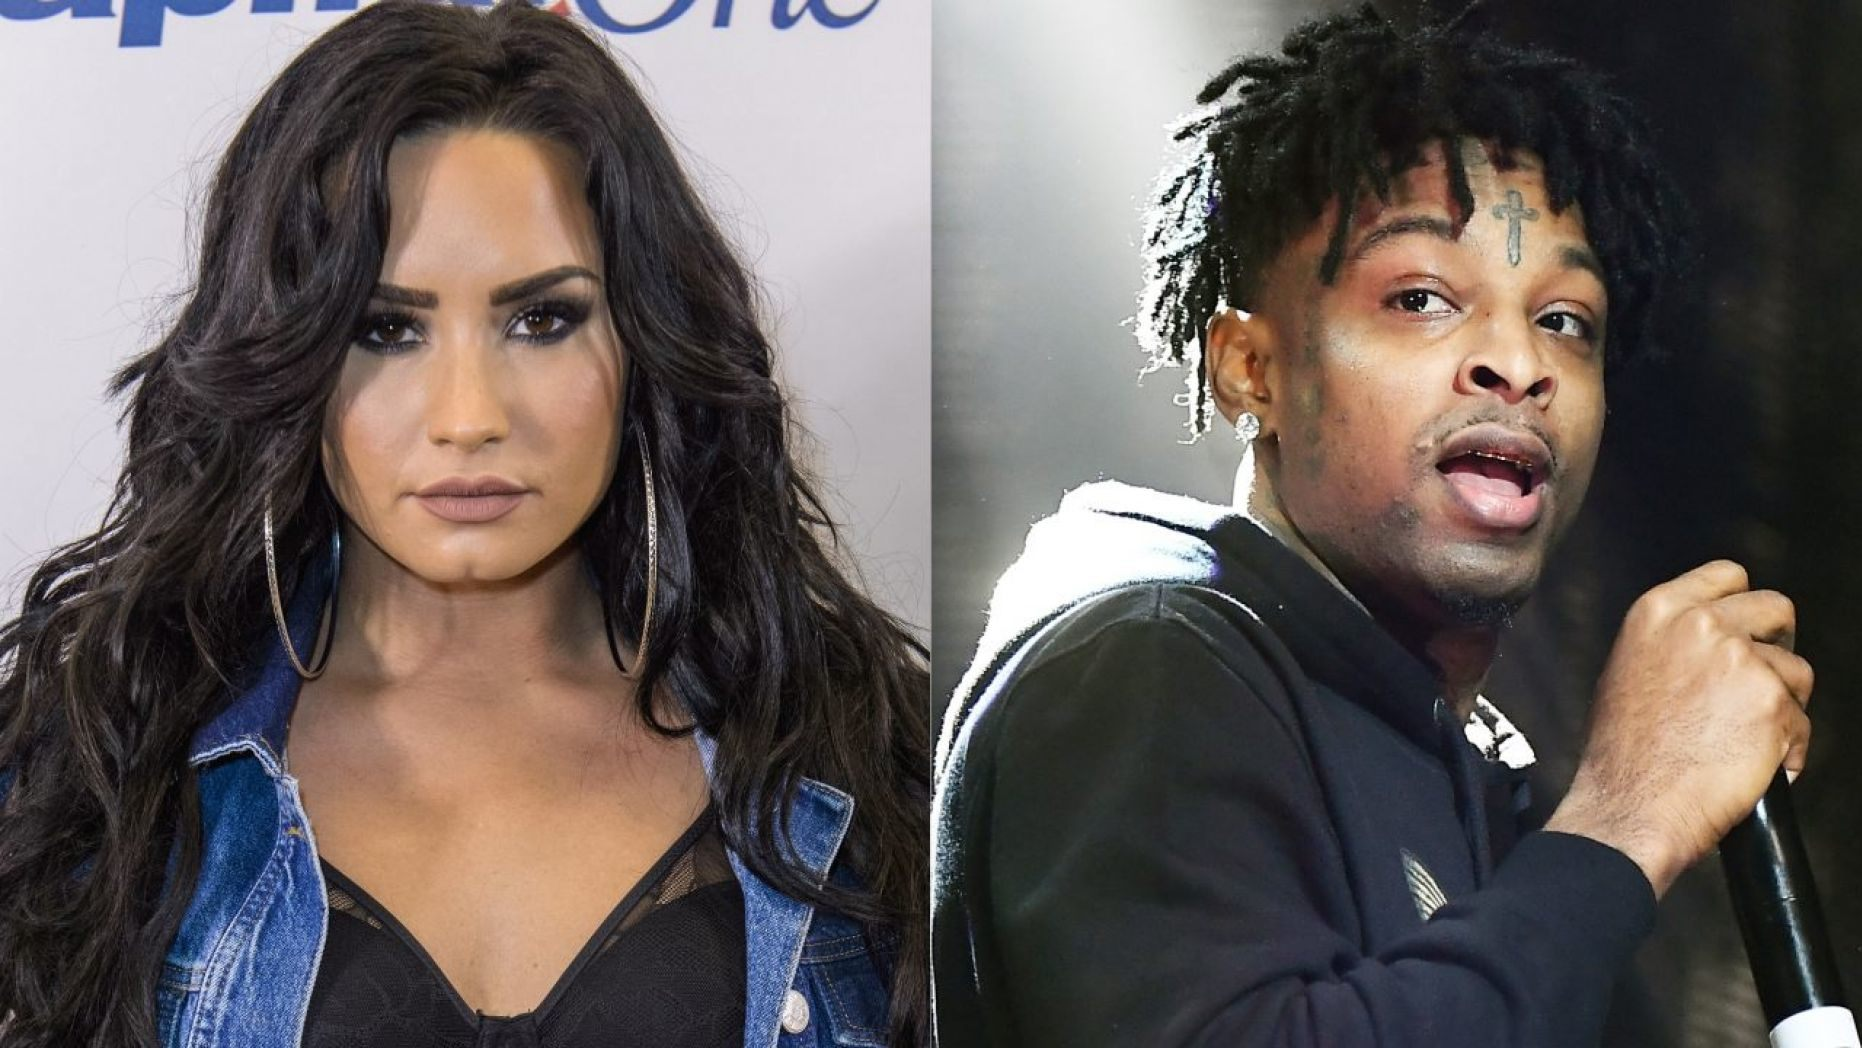 Demi Lovato Angrily Deactivates Twitter after Mocking 21 Savage's ICE arrest